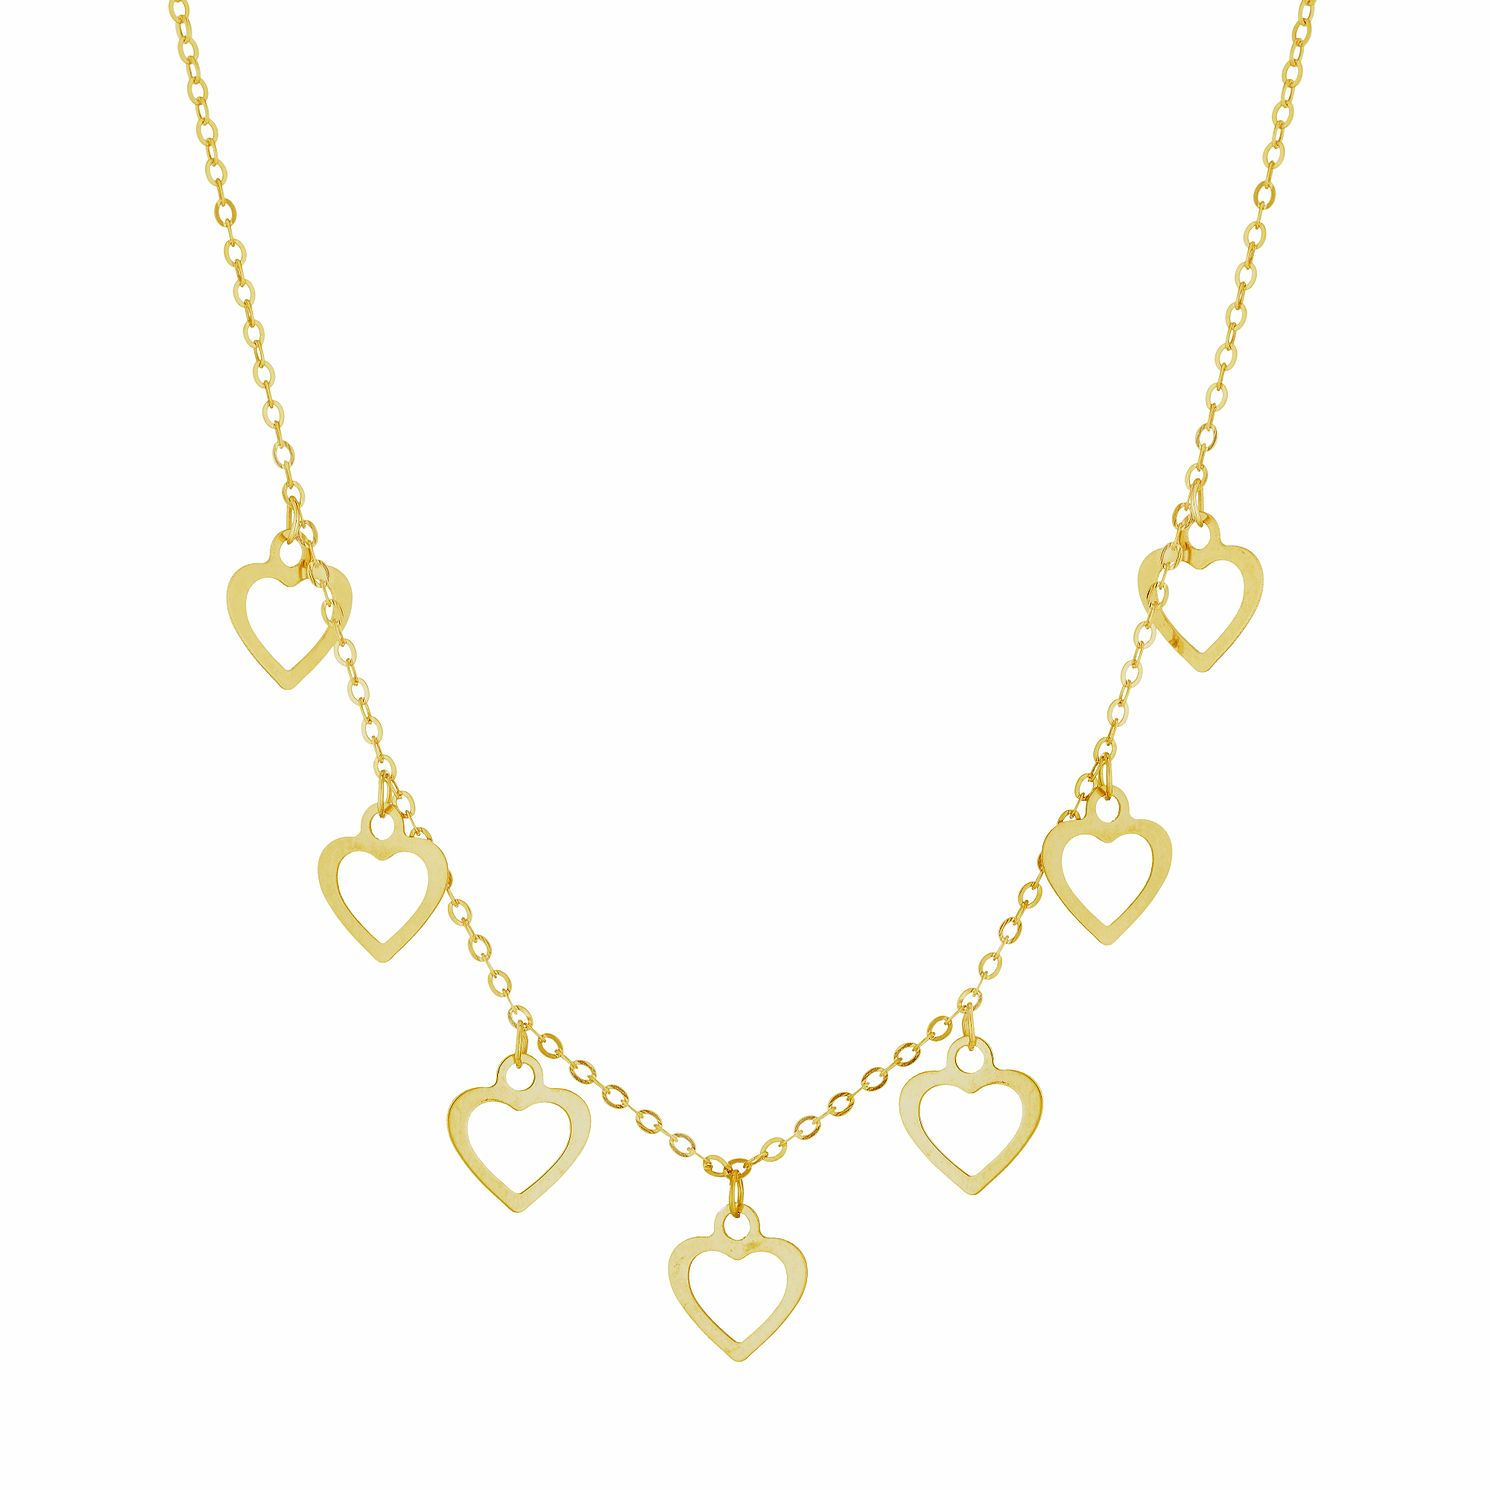 9ct Yellow Gold Heart Charm Necklace - Product number 3165388